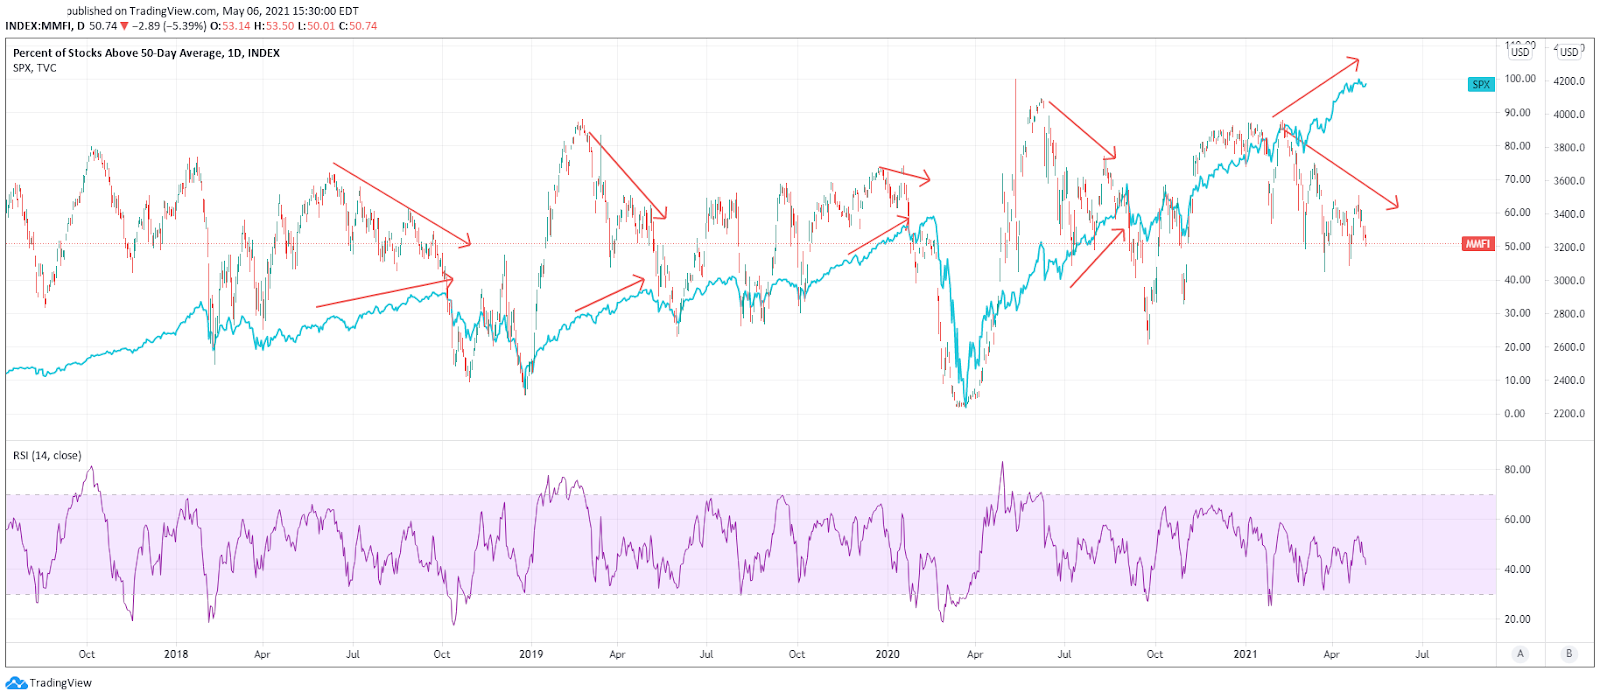 %age Of Stocks Above 50DMA